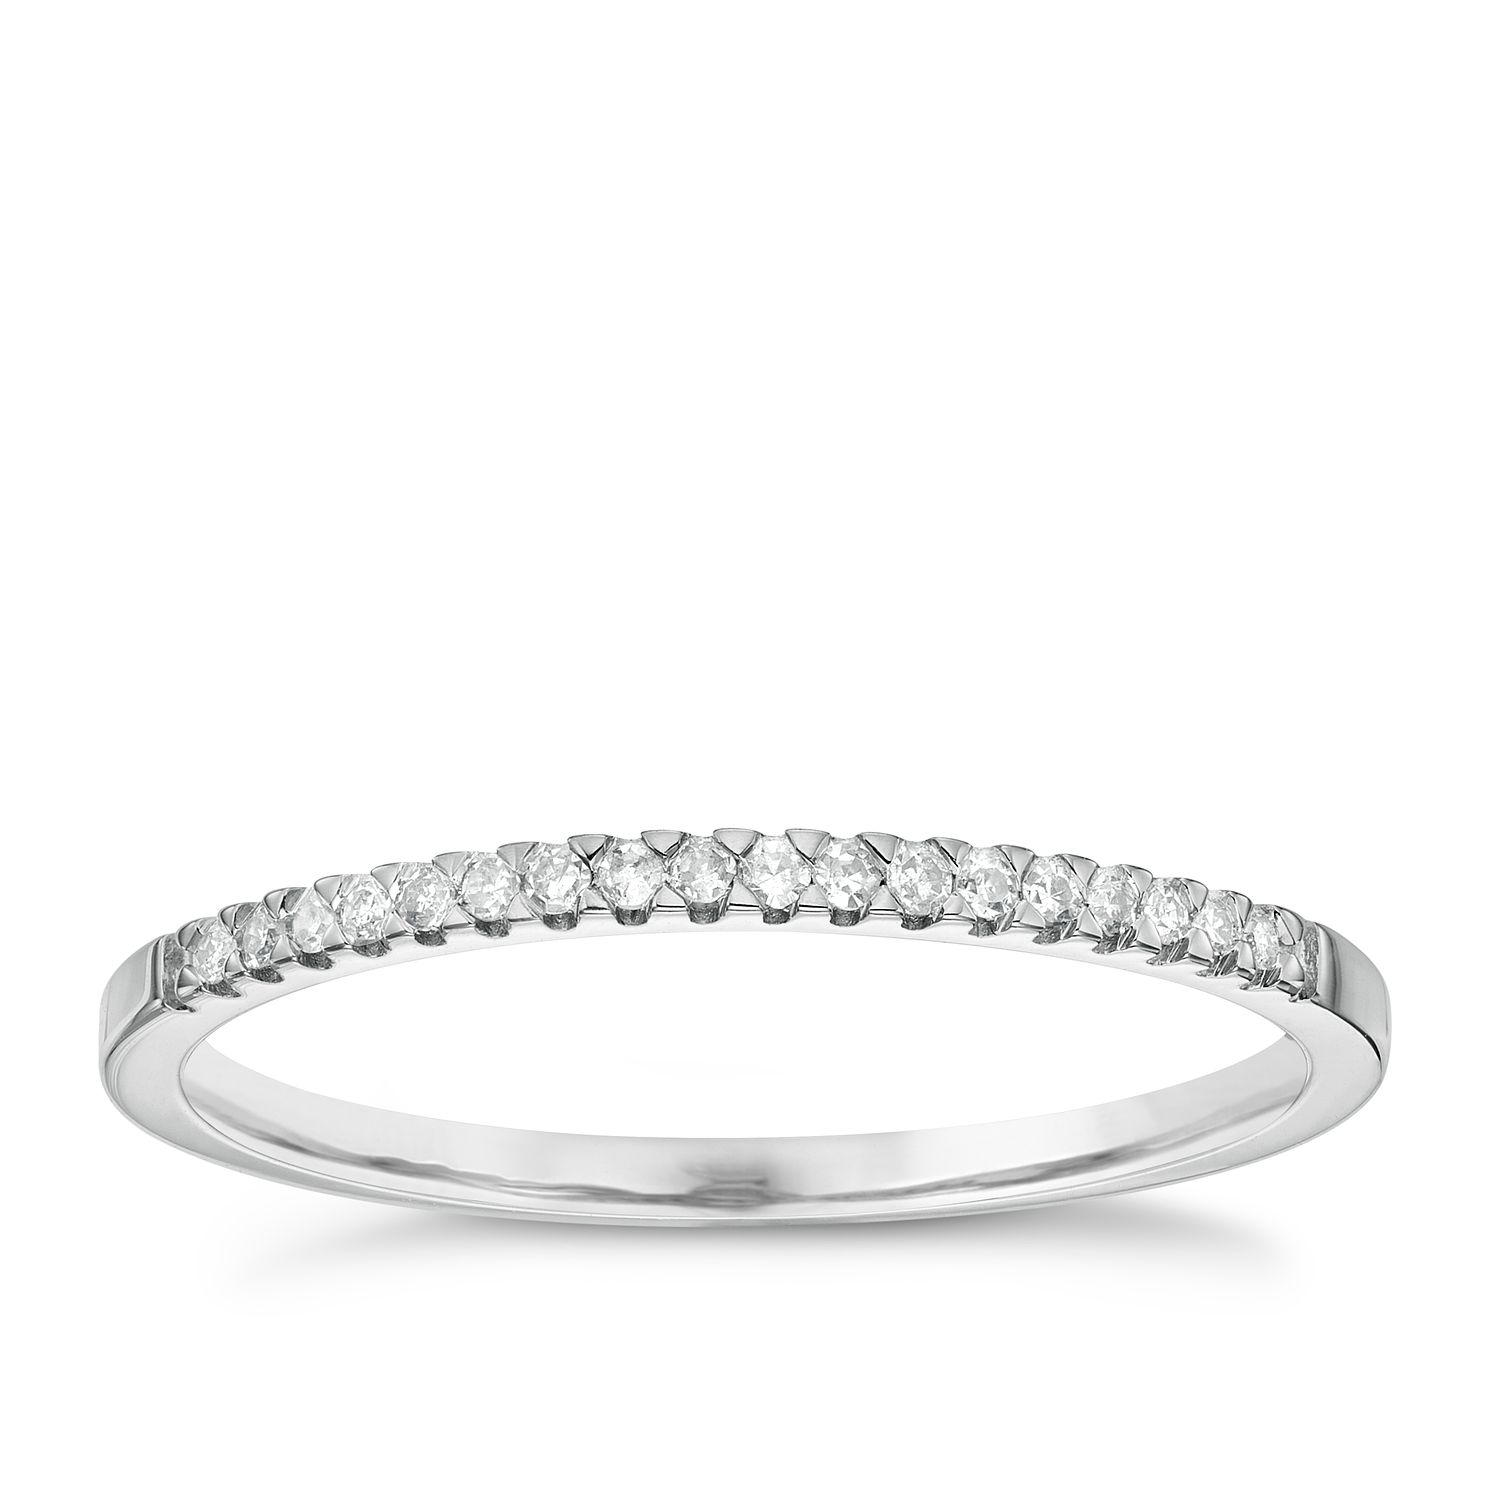 white jewelry in round yg for yellow thin diamonds gold bands micropave fascinating women band with wedding diamond nl